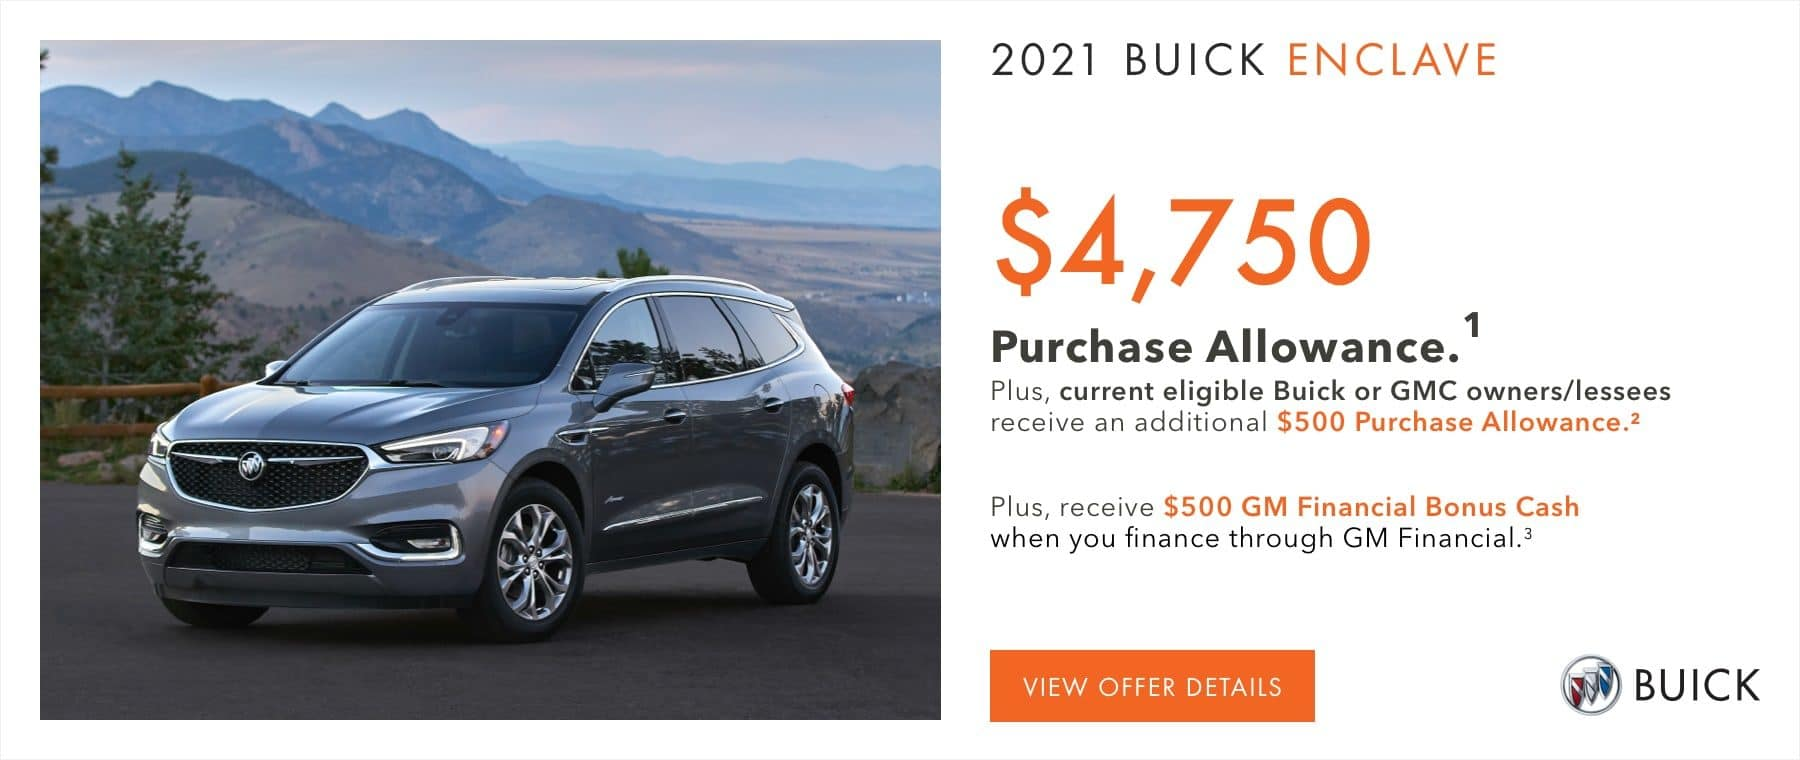 $4,750 Purchase Allowance.1 Plus, current eligible Buick or GMC owners/lessees receive an additional $500 Purchase Allowance.2 Plus, receive $500 GM Financial Bonus Cash when you finance through GM Financial.3